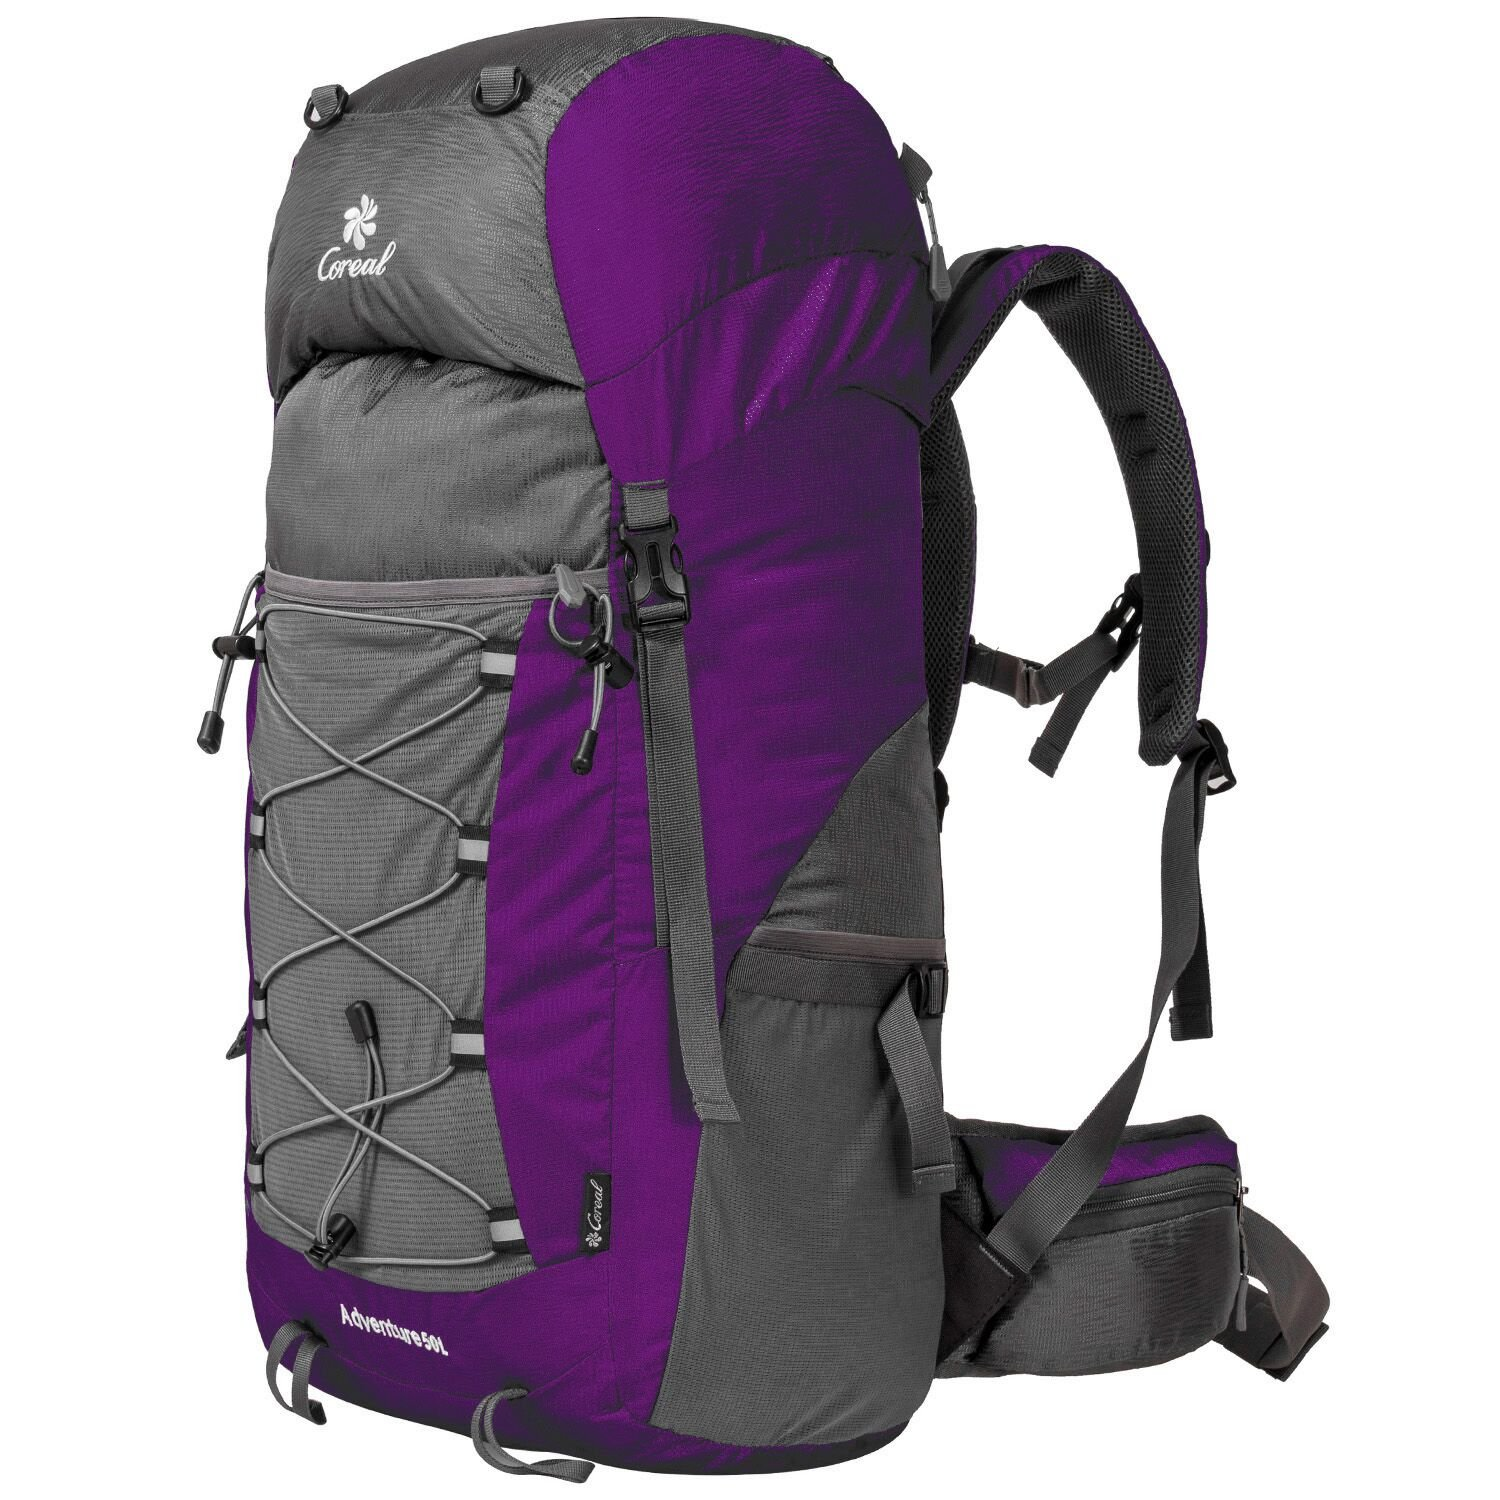 Coreal Unisex 50l Hiking Backpack for Travel Outdoor Sport Camping Trekking Lightweight Purple